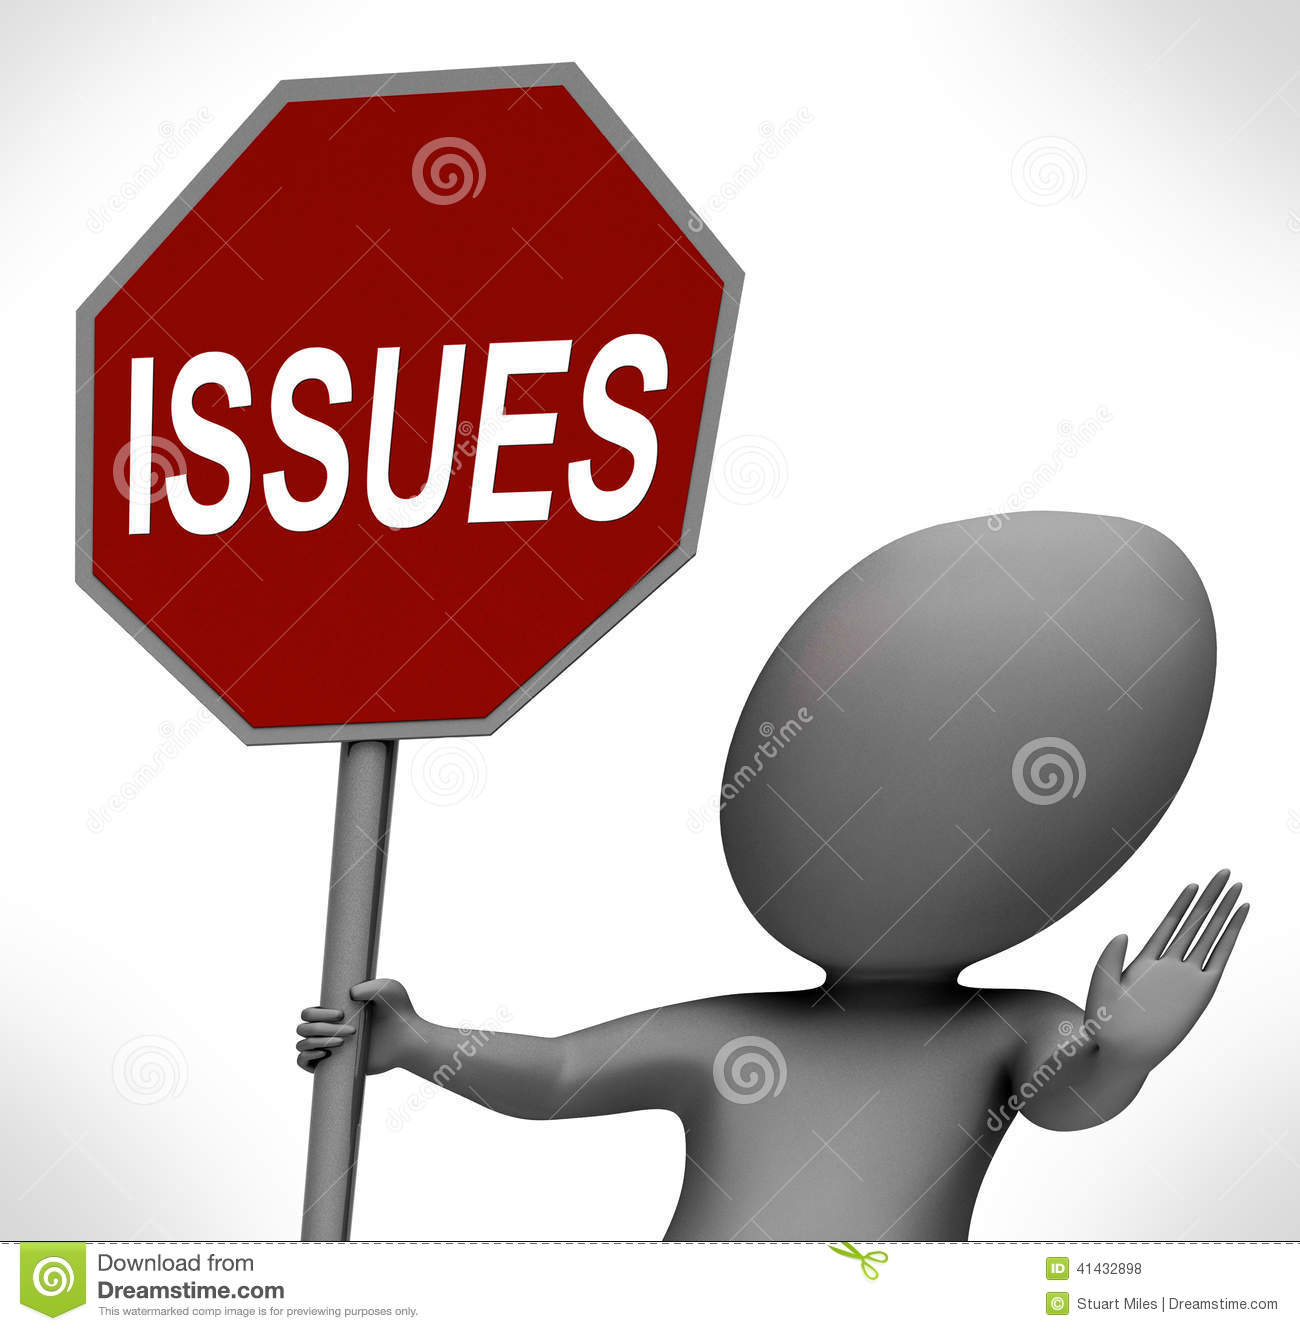 Key issues clipart.